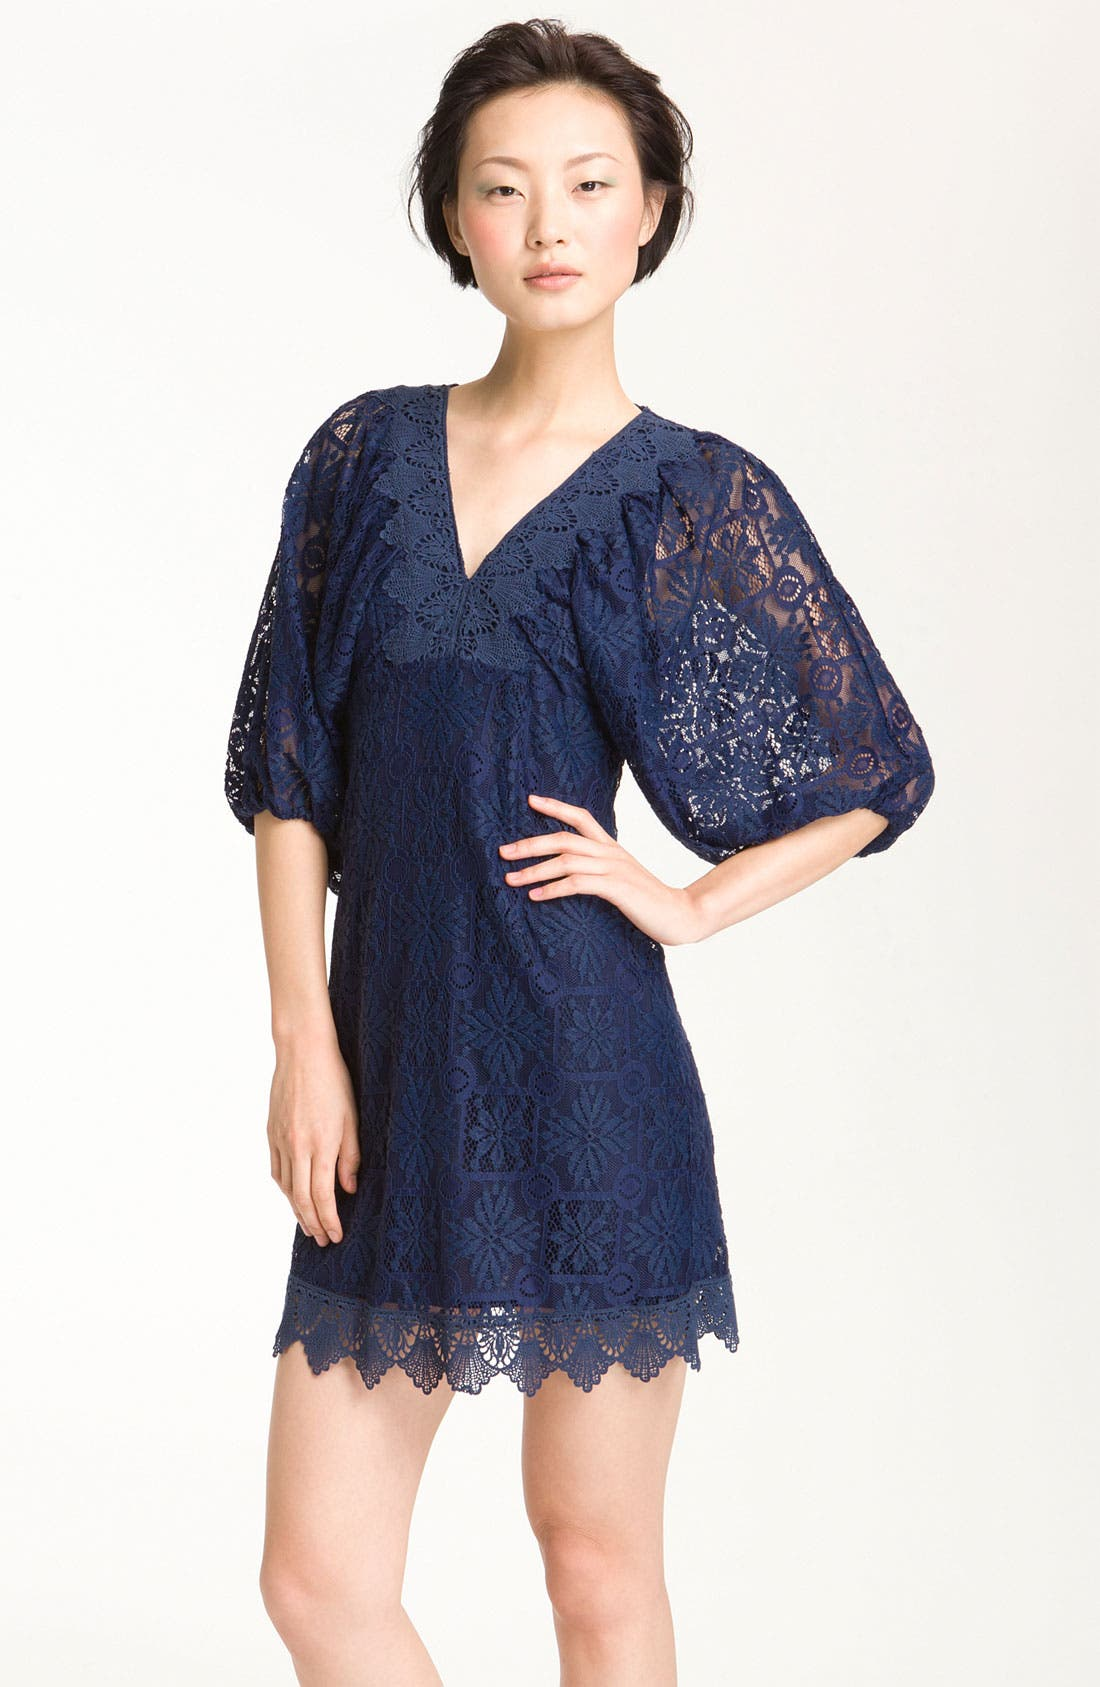 Alternate Image 1 Selected - Laundry by Shelli Segal Lace Minidress